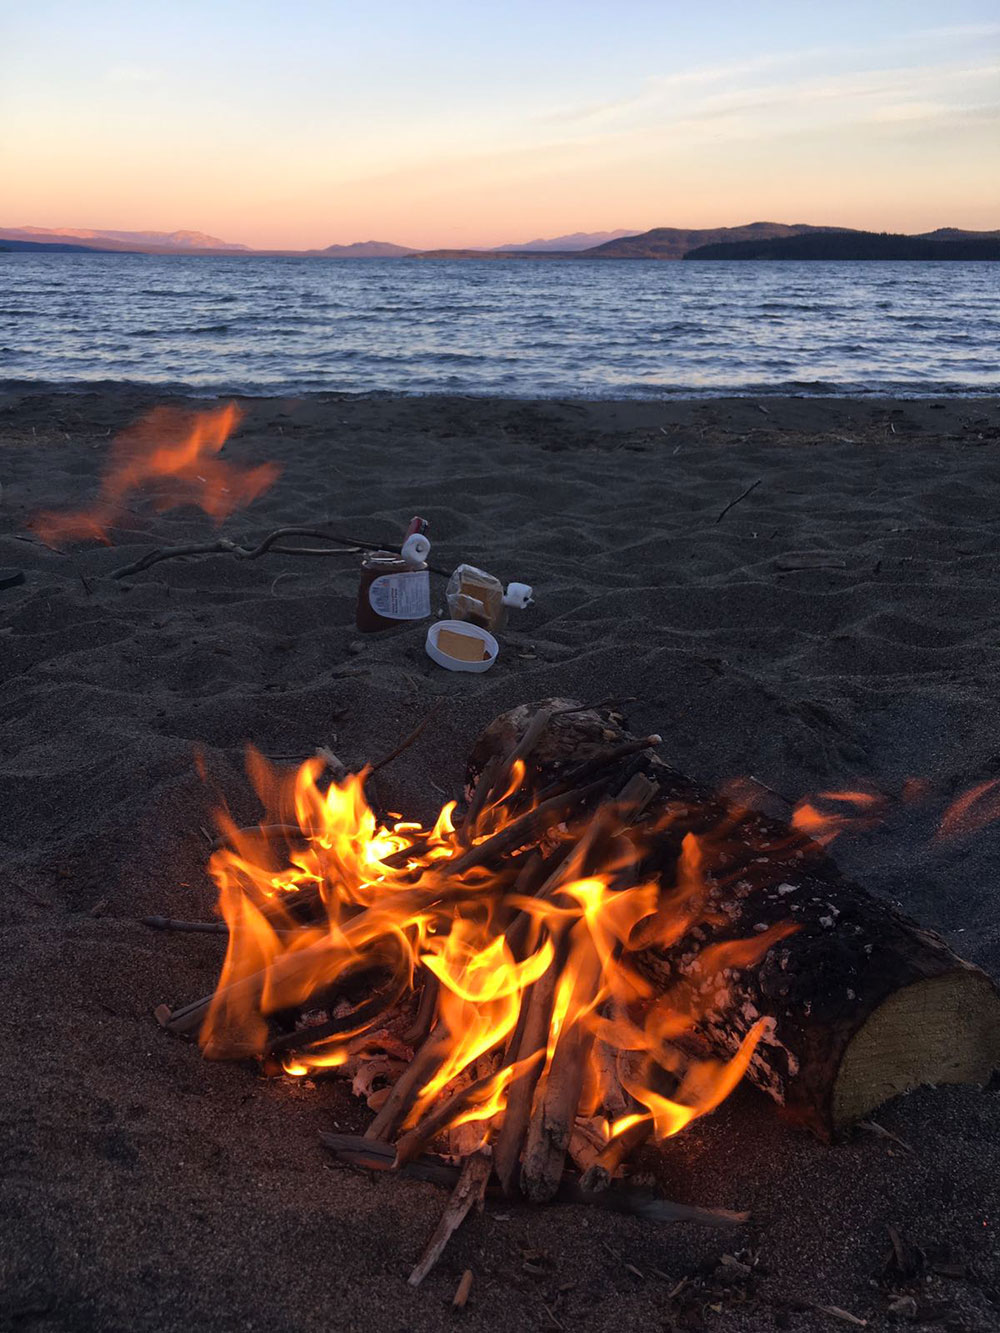 Feu de camp et marshmallows au bord d'un lac